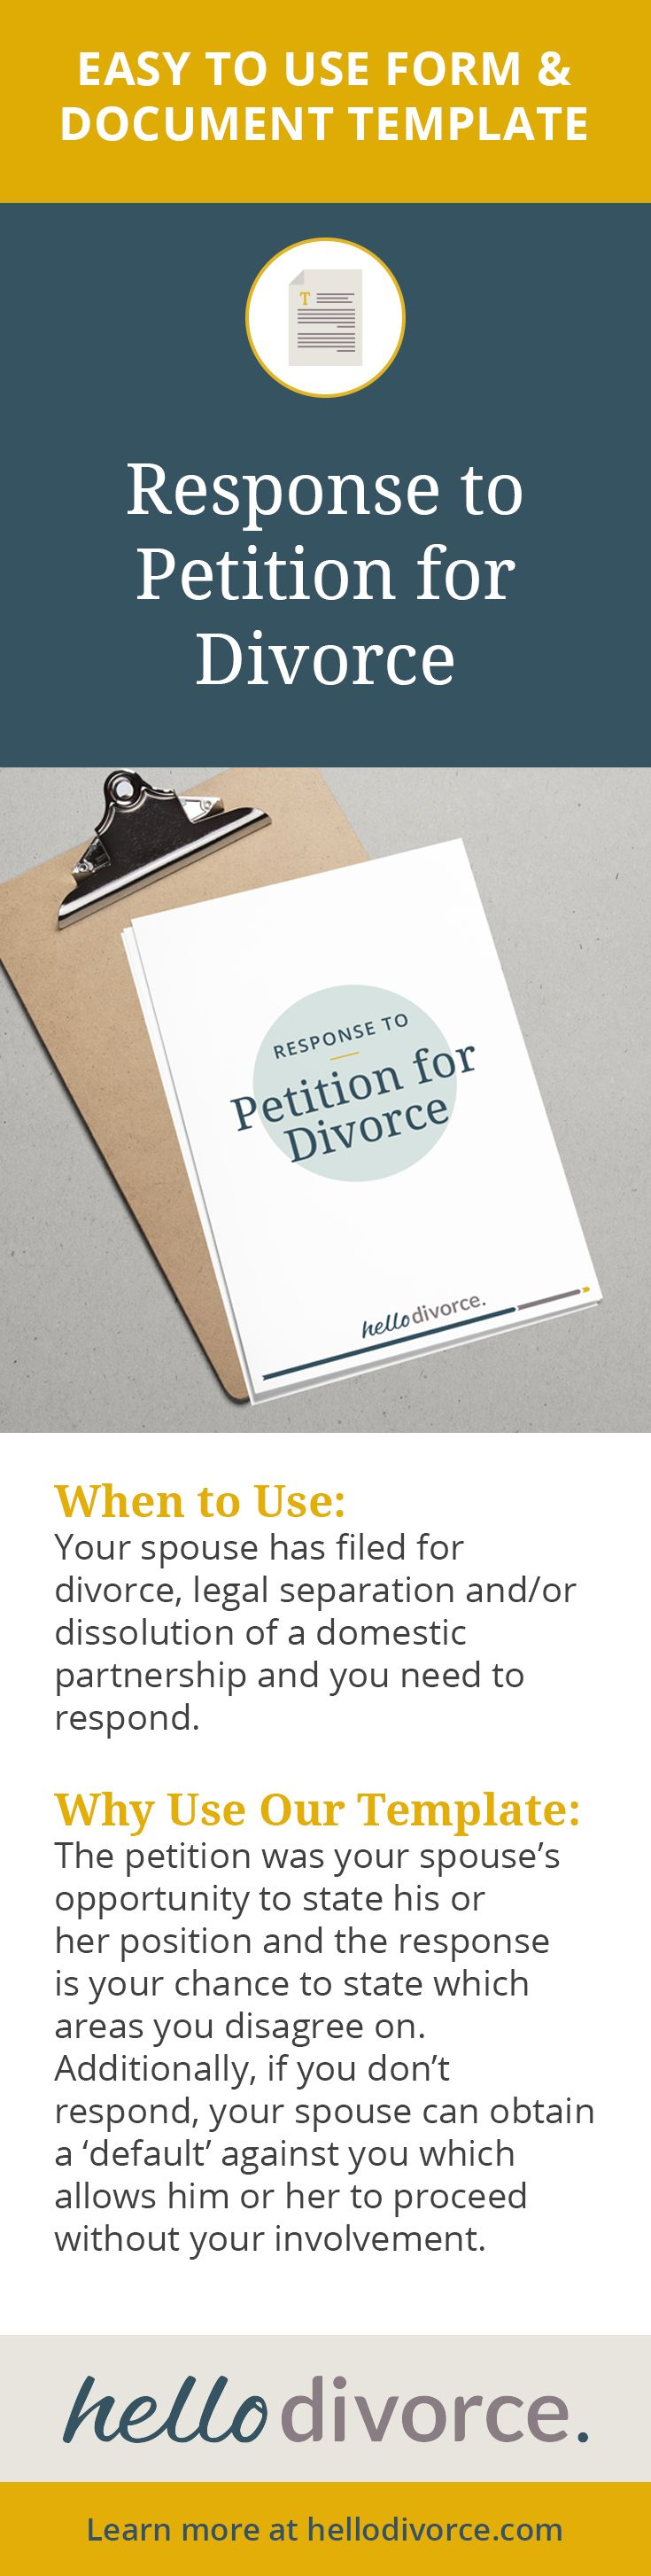 The 25 best petition for divorce ideas on pinterest suffragette if your spouse files the initial petition for divorce it is important that you file solutioingenieria Choice Image